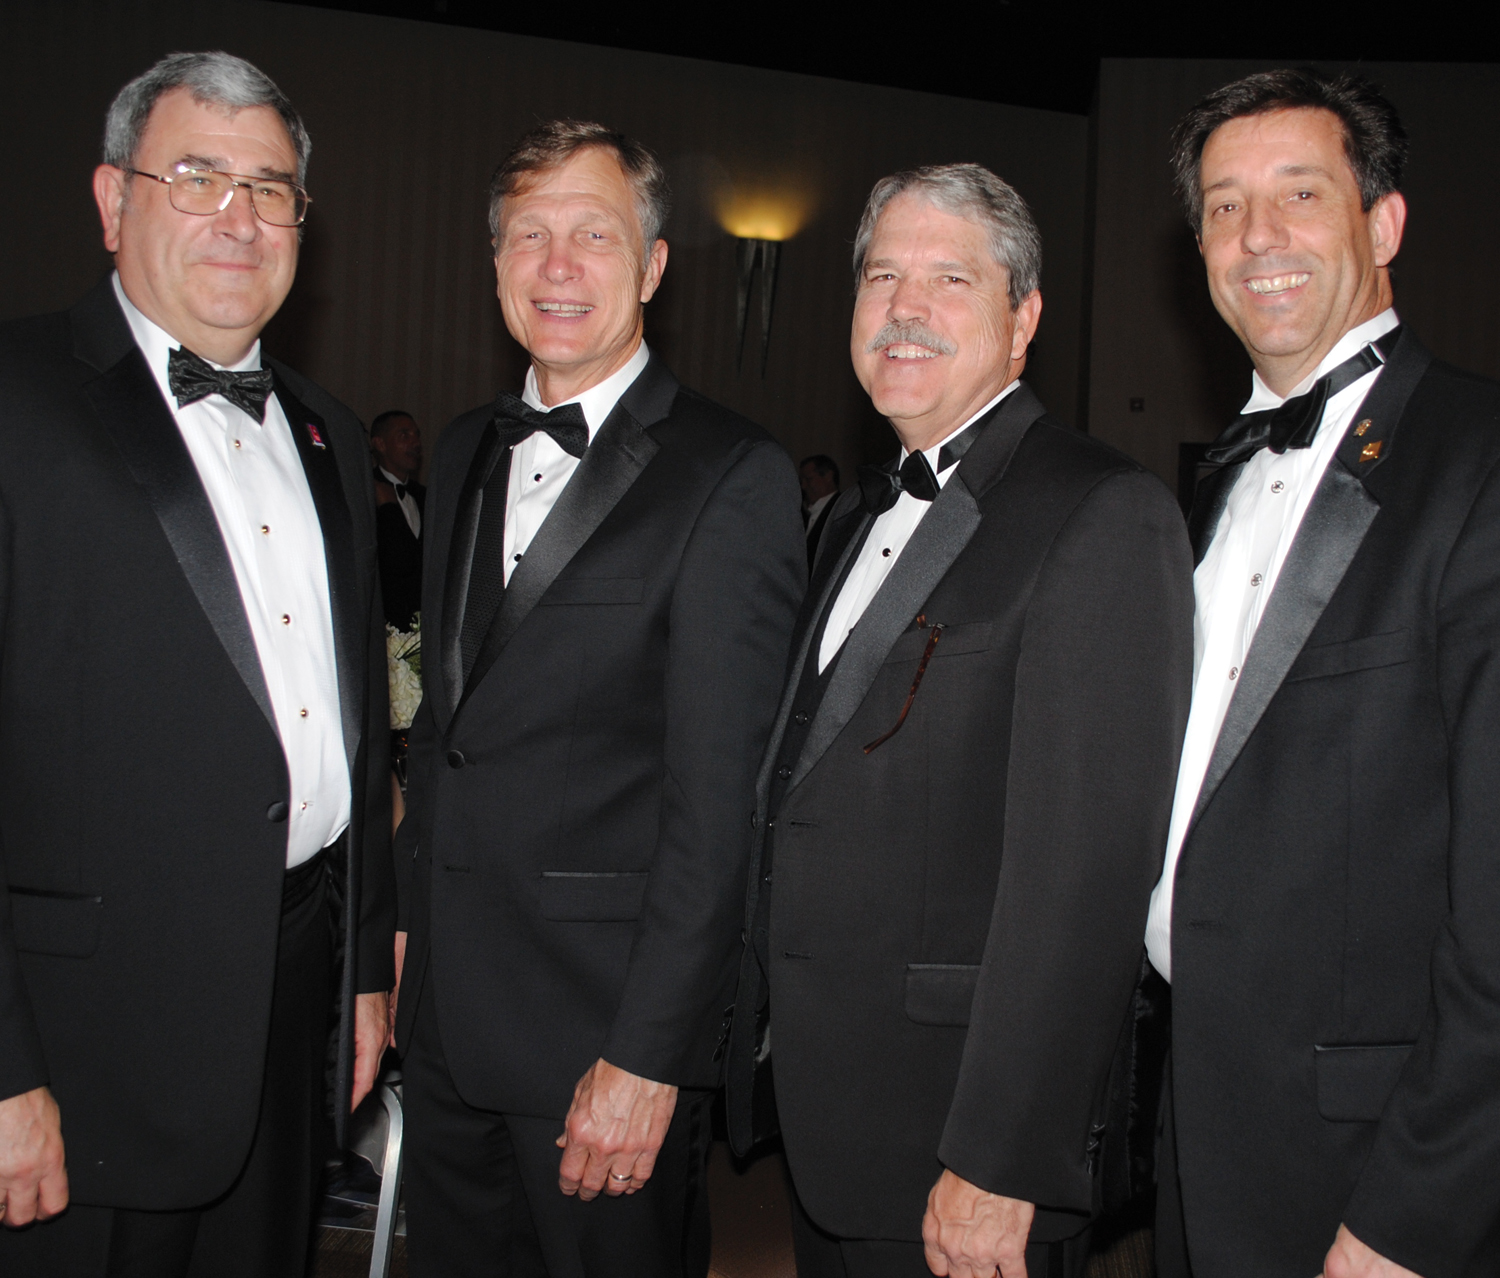 Space Center Rotary President Scott Rainey, right, and President-elect John Branch, from left, welcome Congressman Dr. Brian Babin and State Sen. Larry Taylor to the 29th Annual Rotary Space Gala.